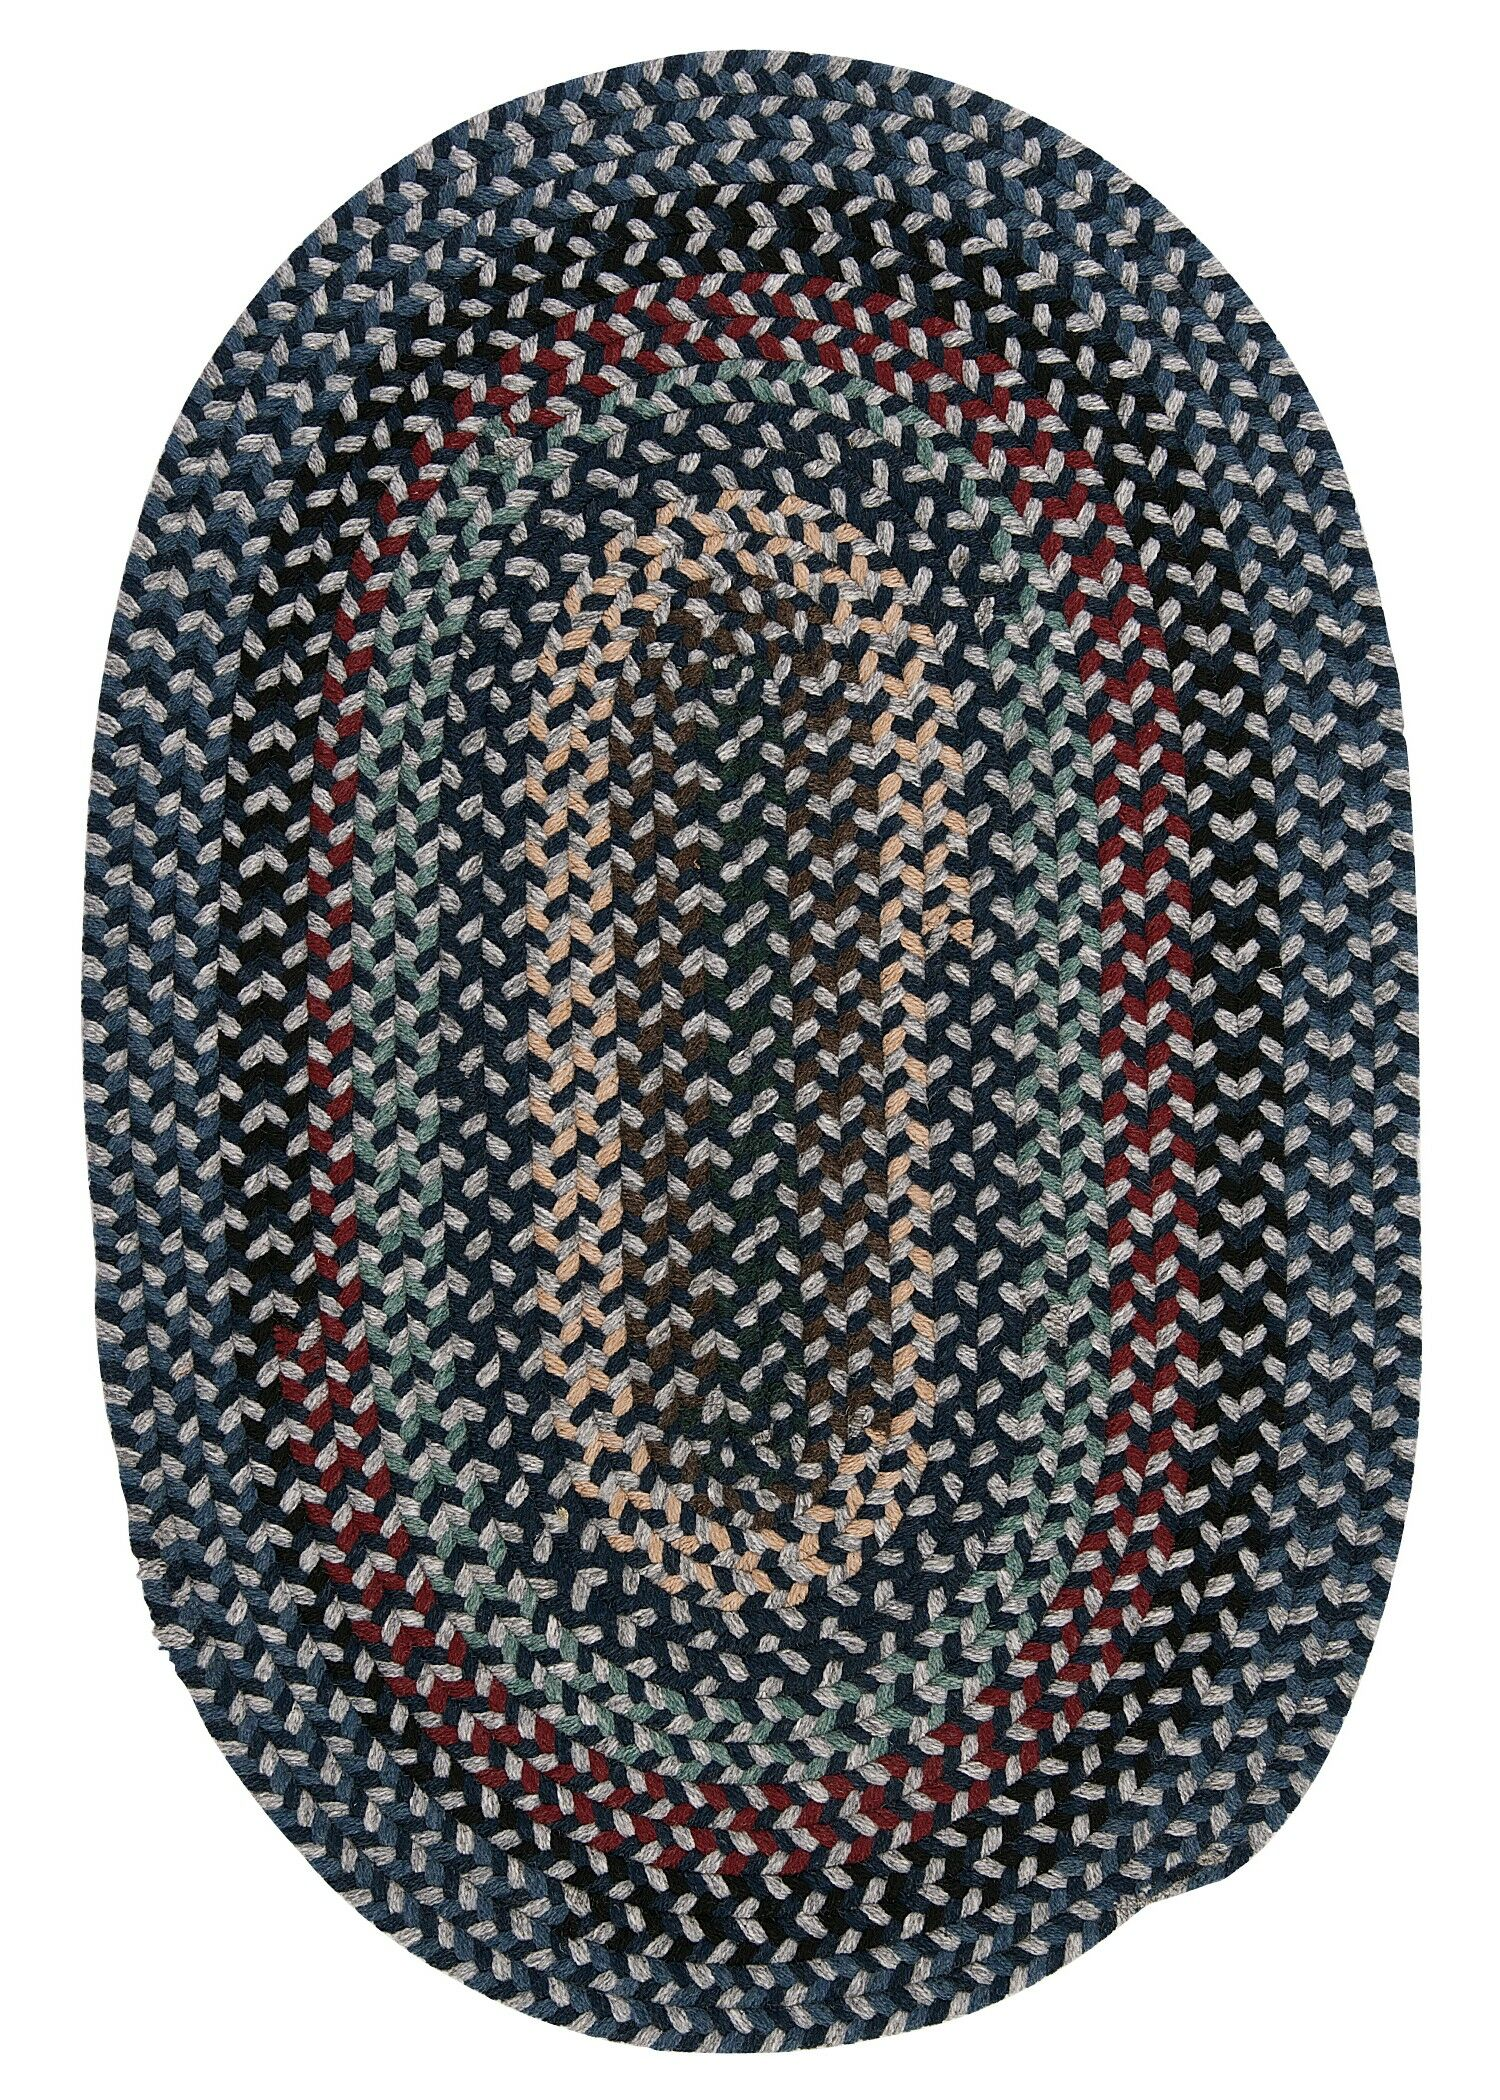 Lettie Winter Blues Area Rug Rug Size: Oval 4' x 6'